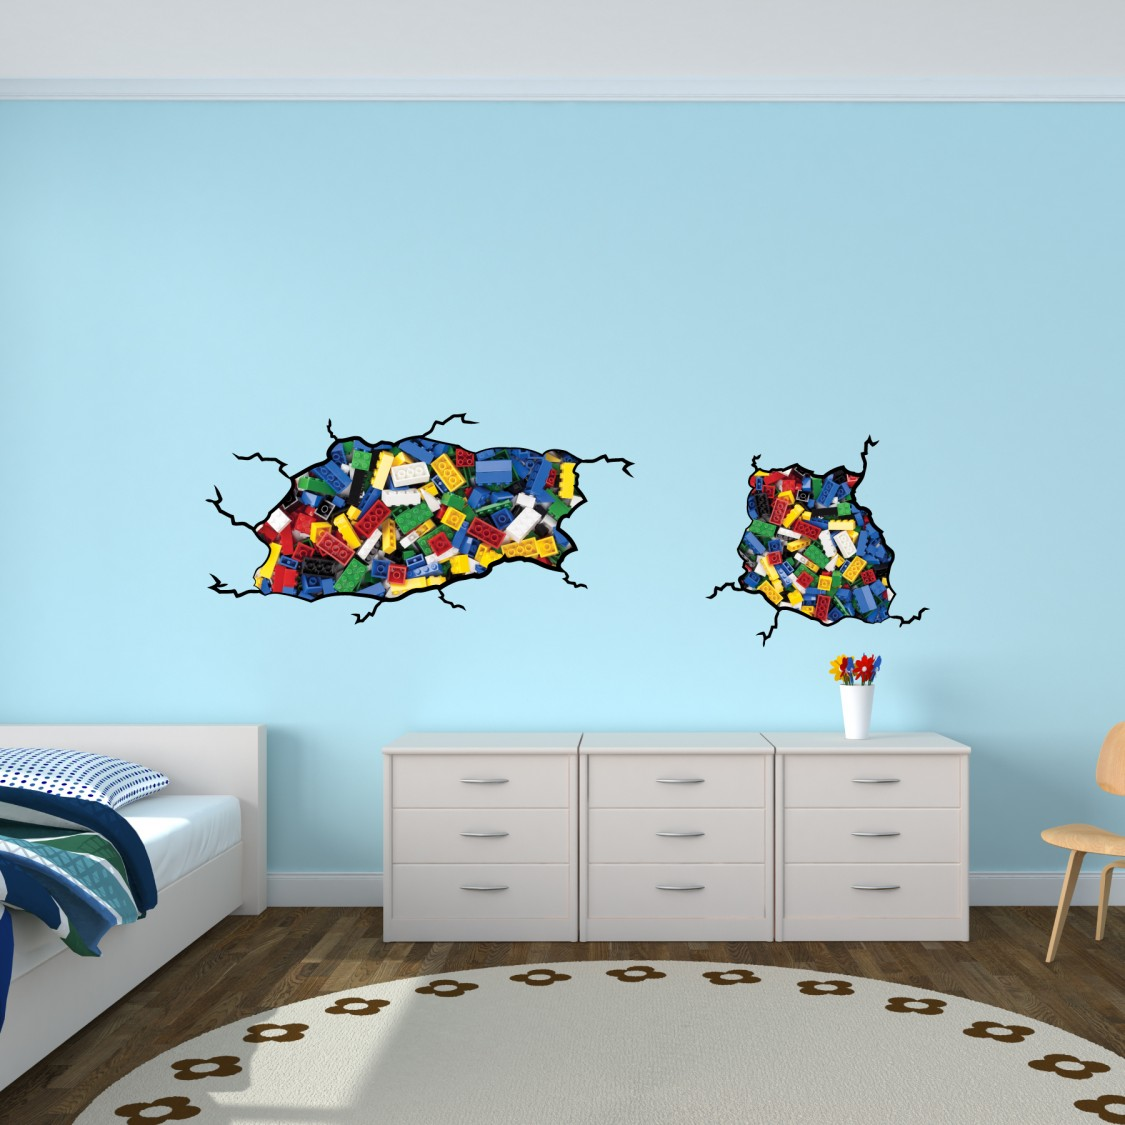 Kids room ideas 15 lego room decor style motivation for Childrens bedroom wall designs